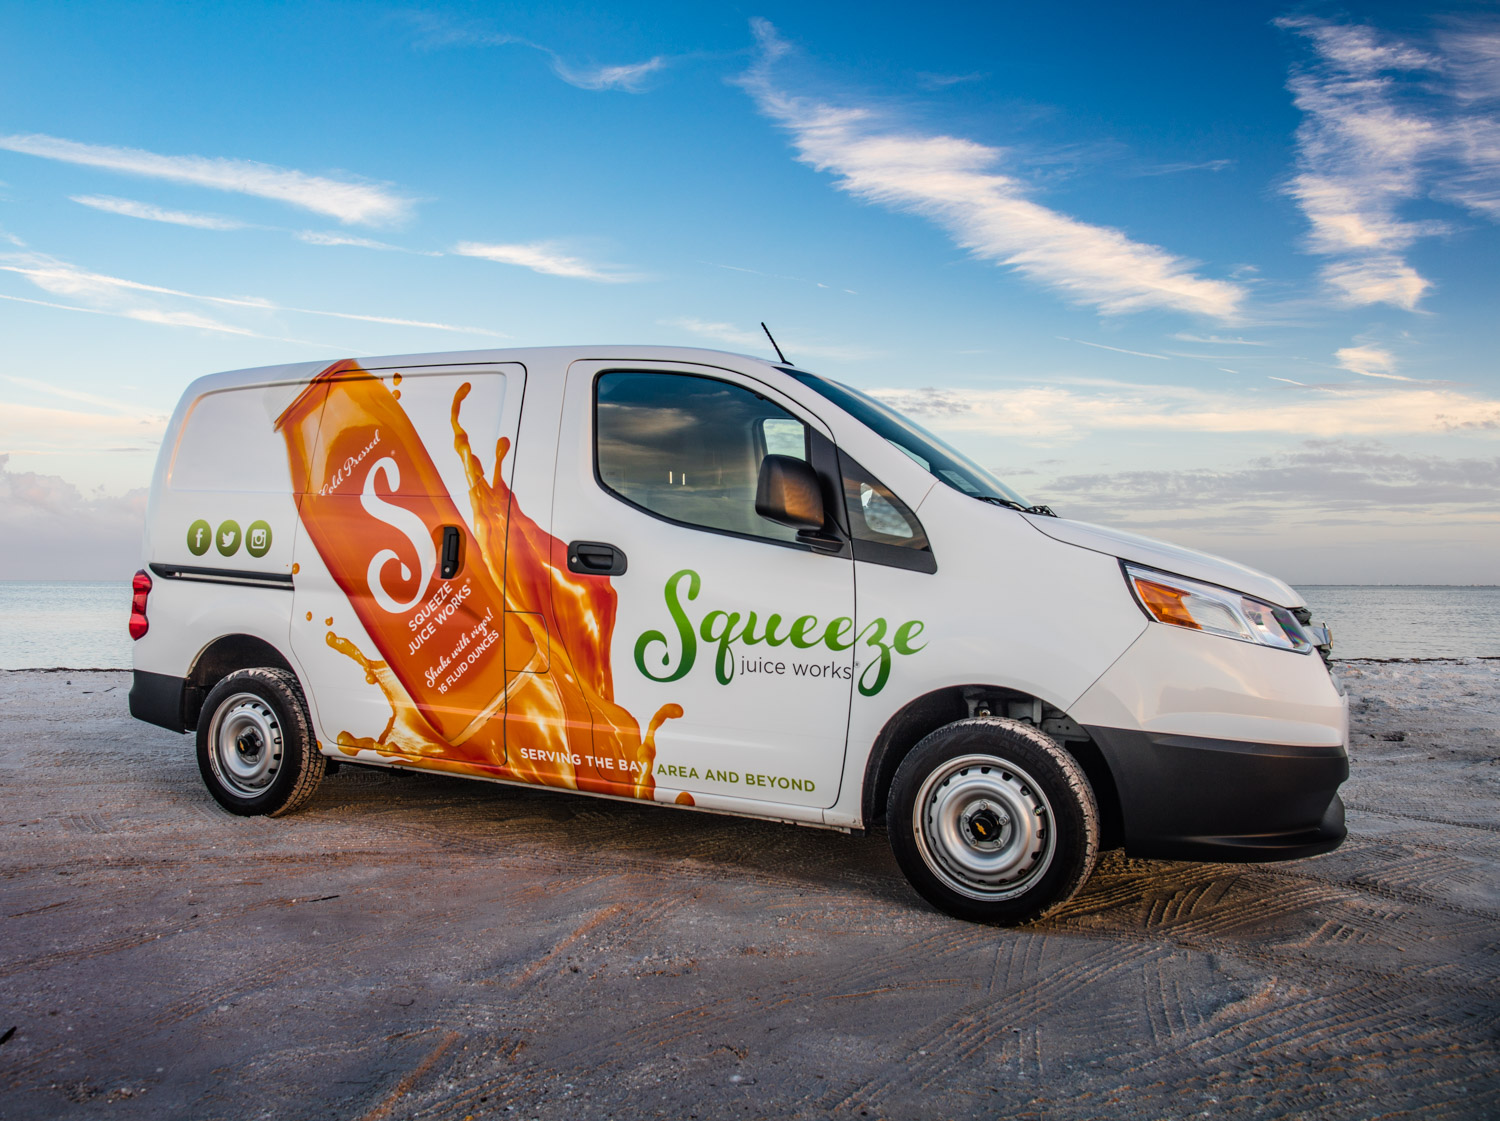 Van wraps are moving billboards for your business. TBC can create engaging graphics that will turn heads.